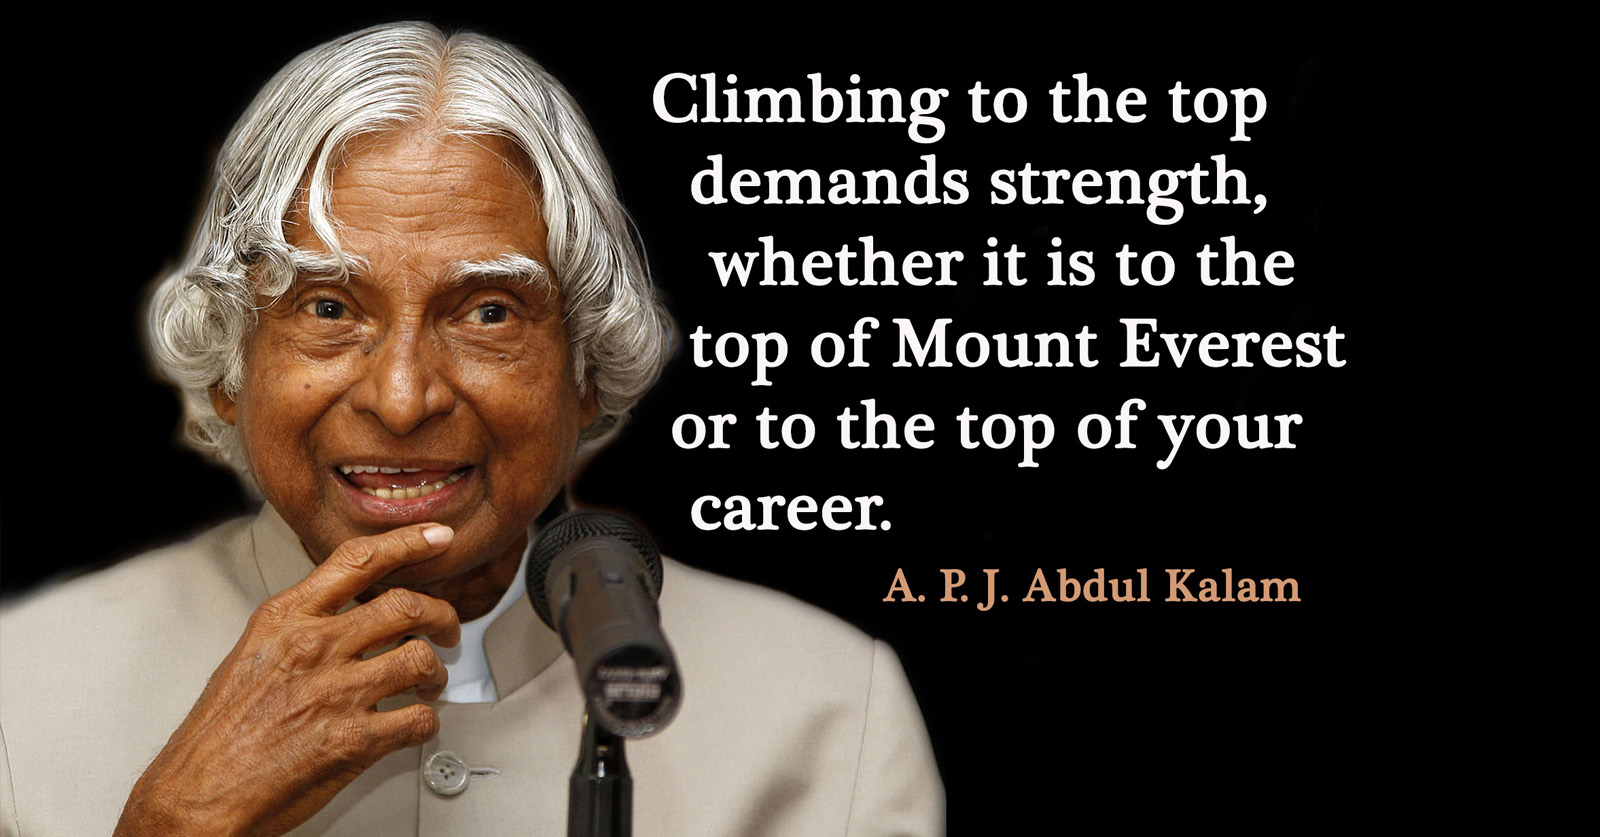 Abdul Kalam's 10 Most Inspiring Quotes